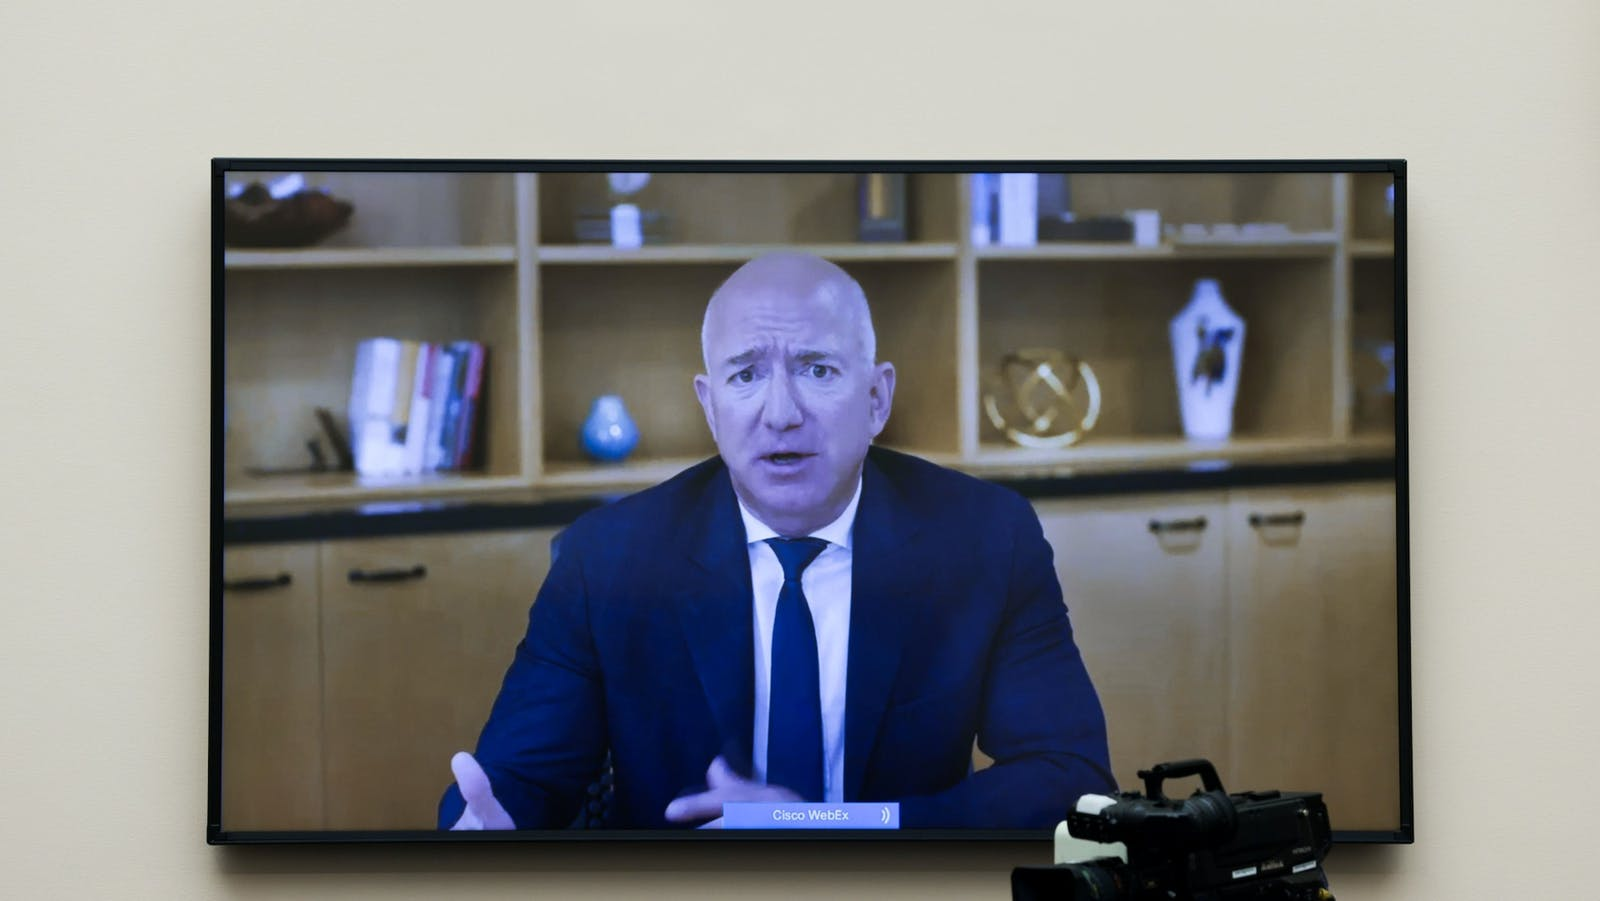 Amazon CEO Jeff Bezos speaks via videoconference at a House hearing last June. Photo by Bloomberg